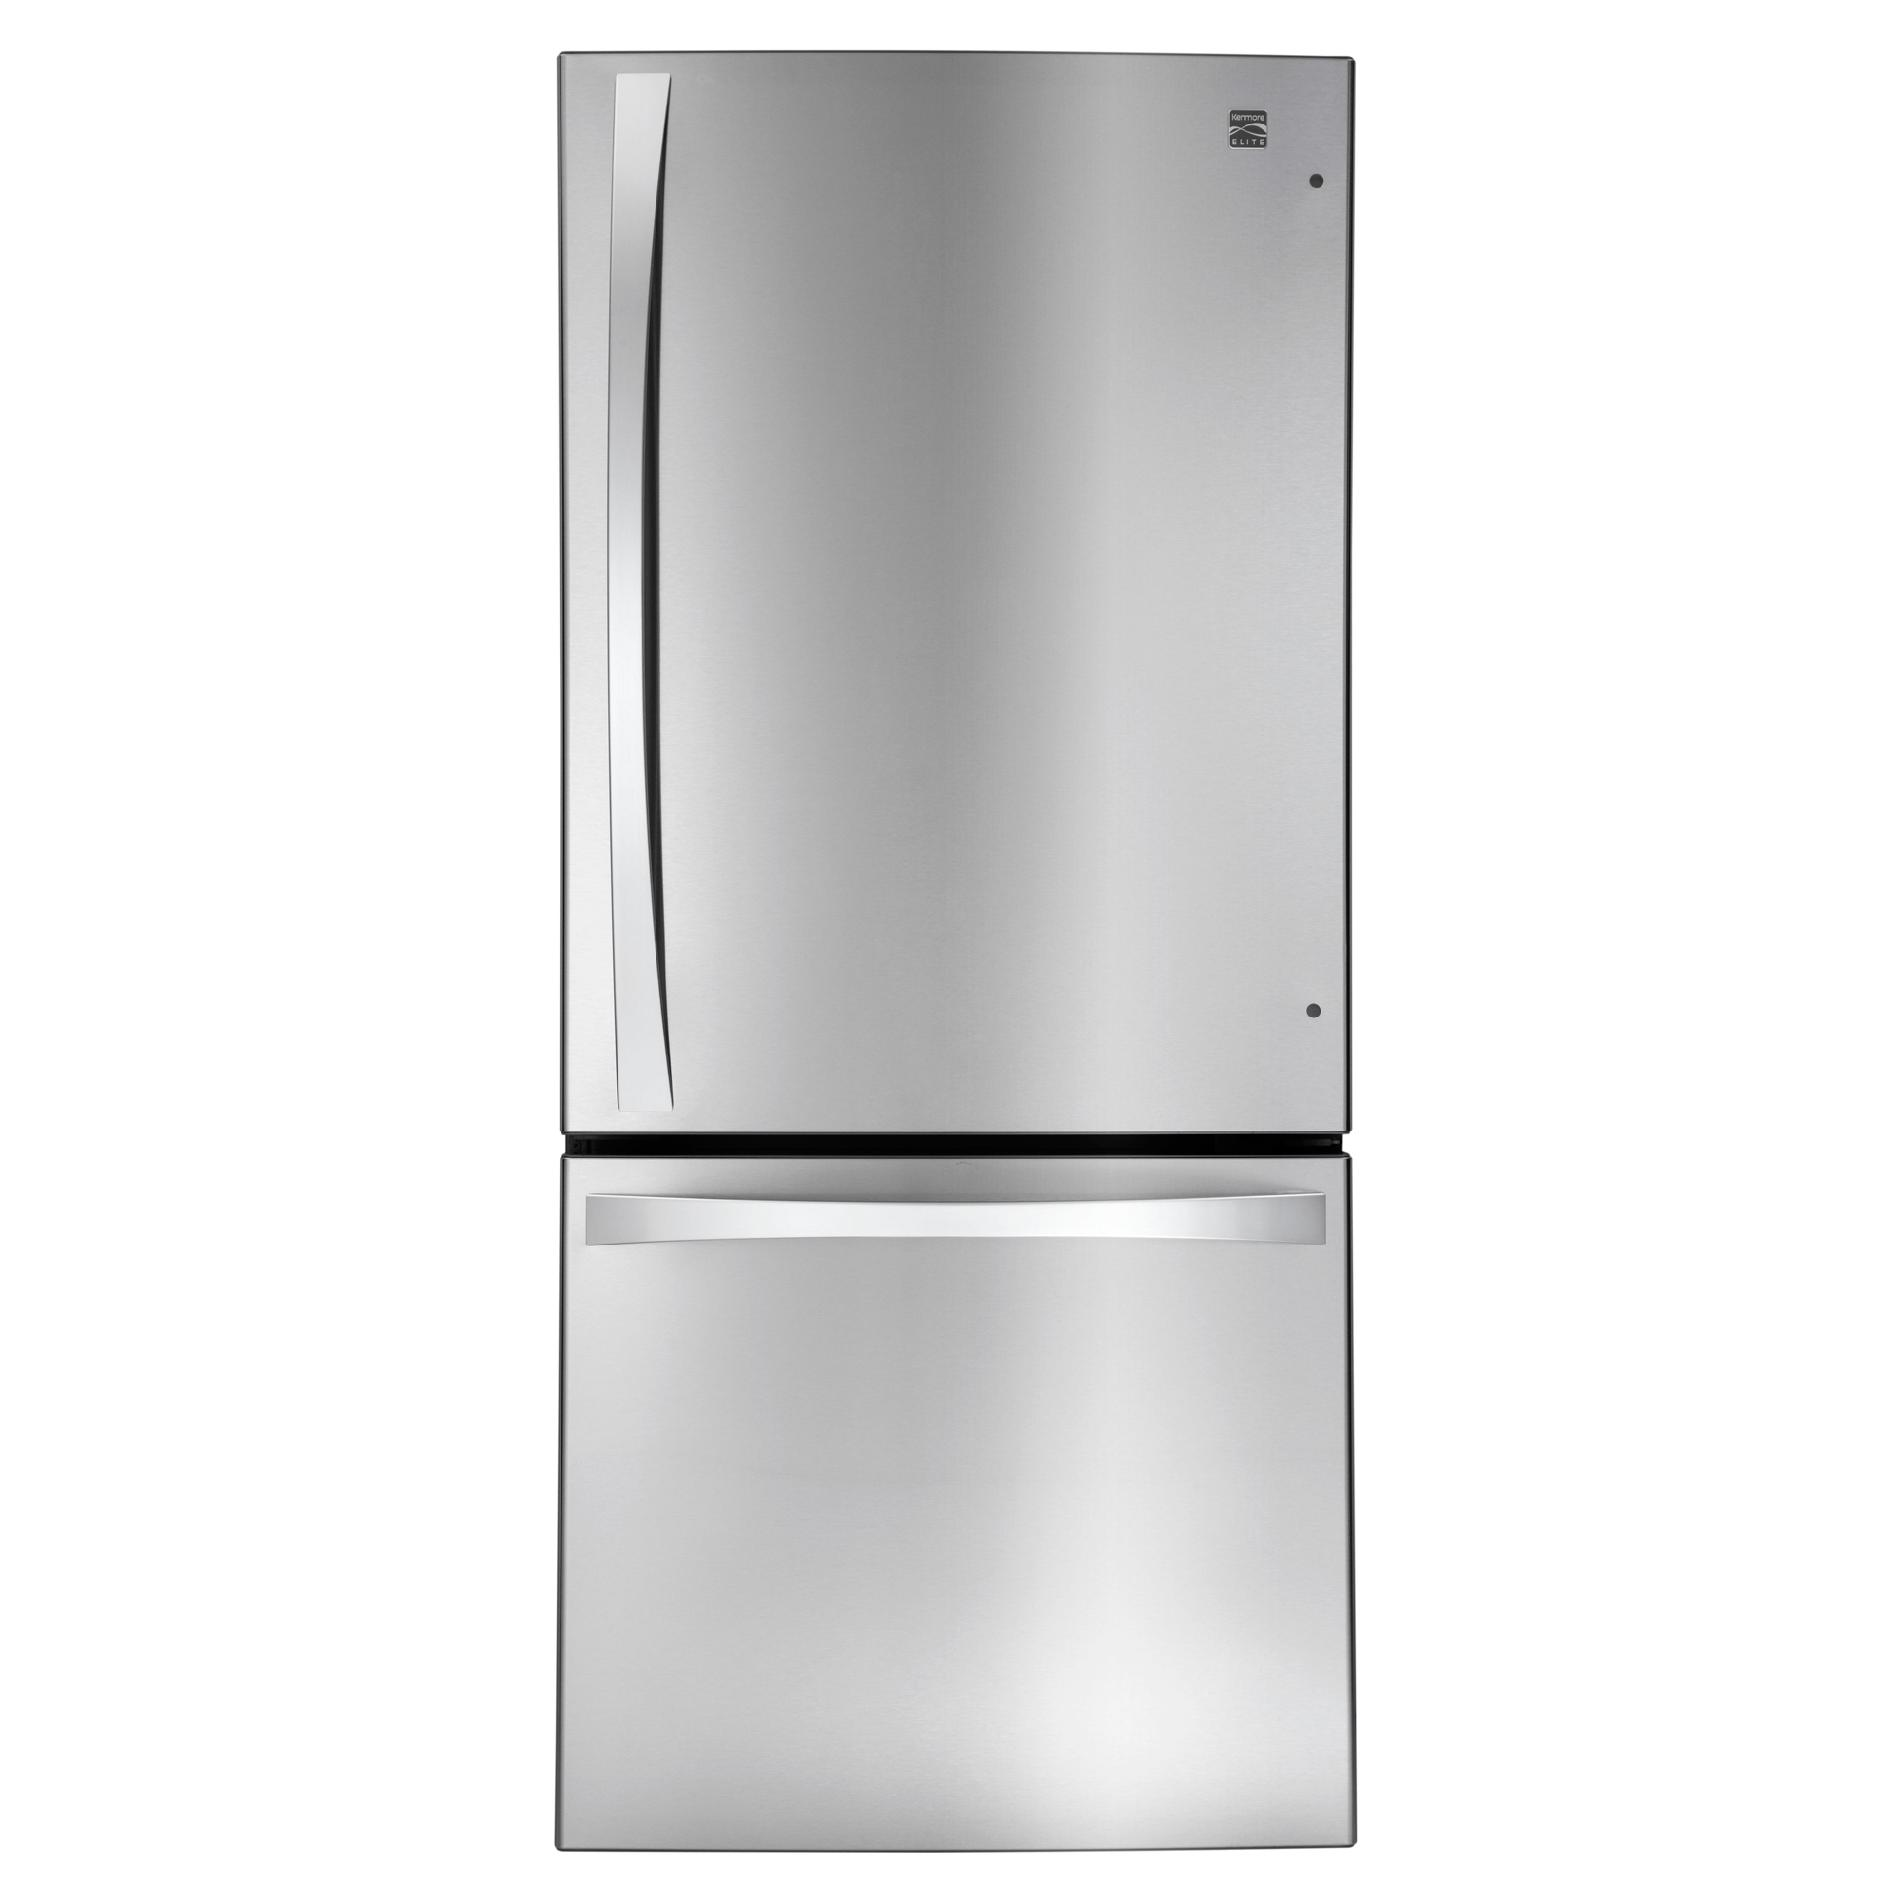 79023-22-1-cu-ft-Bottom-Freezer-Refrigerator-Stainless-Steel